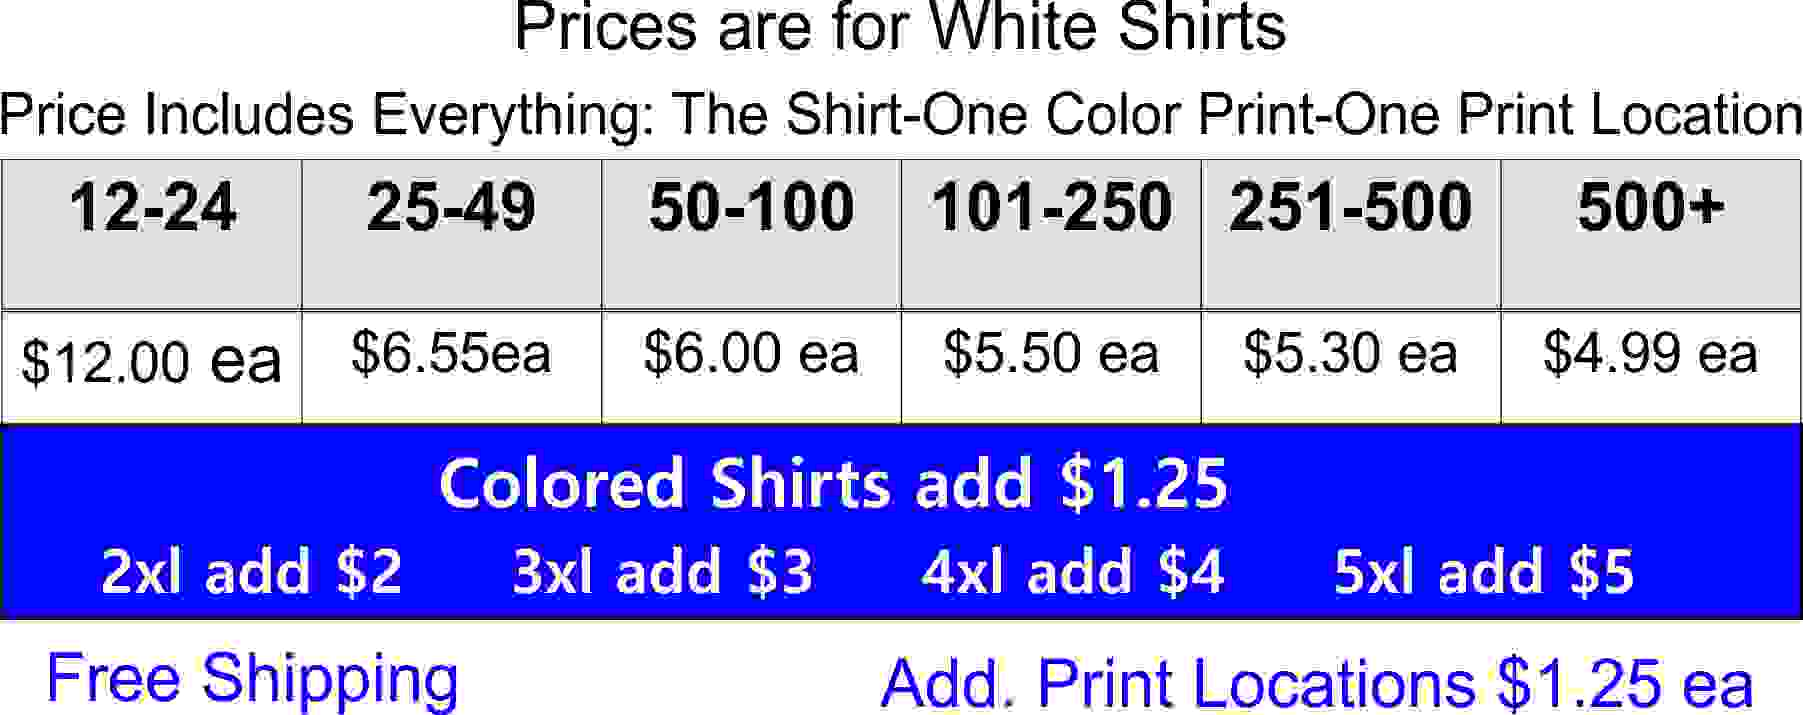 Anvil-Lightweight-T-Shirt-Style-980-Prices